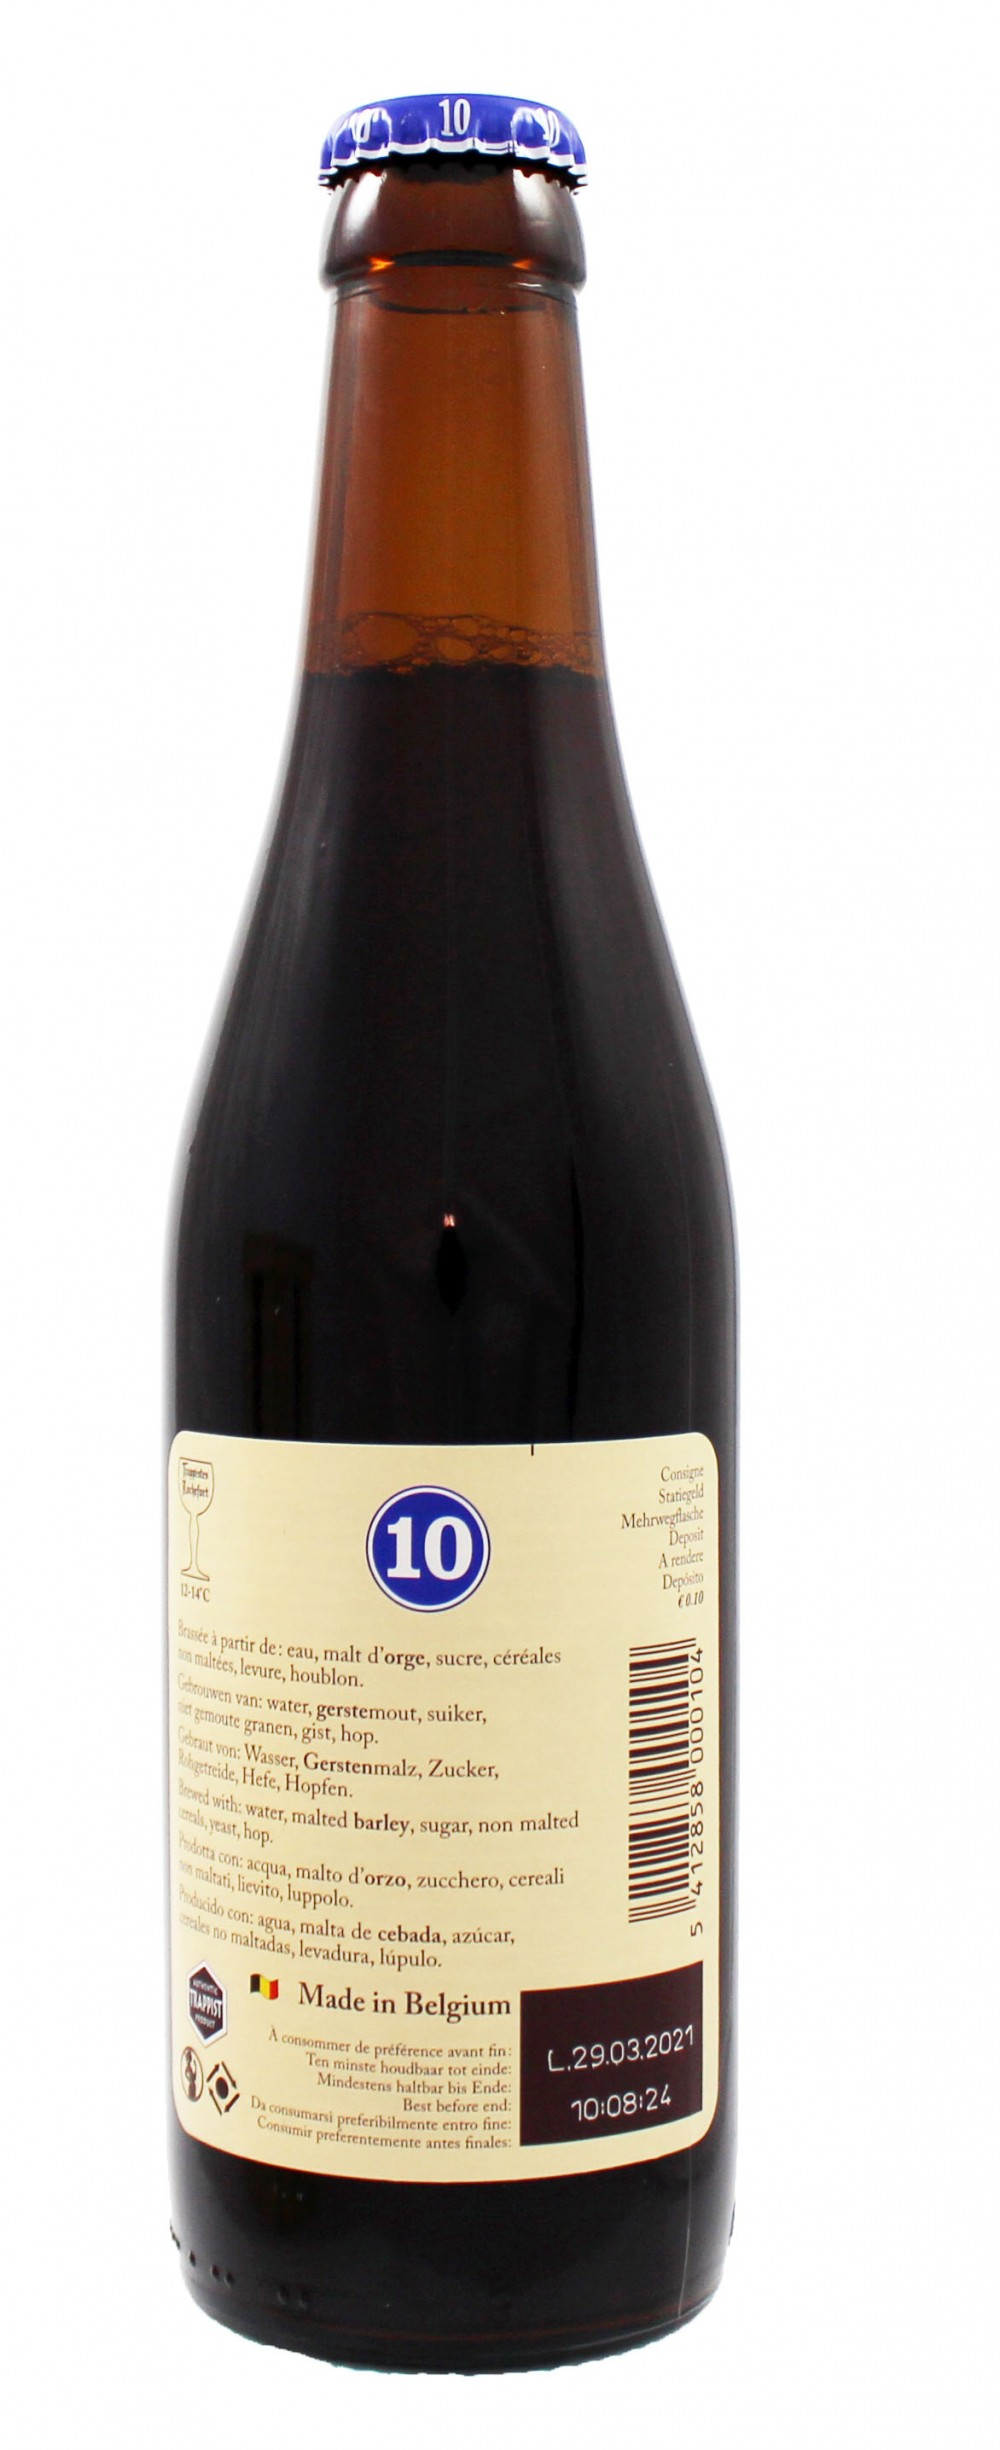 Photo de face de Trappistes Rochefort 10